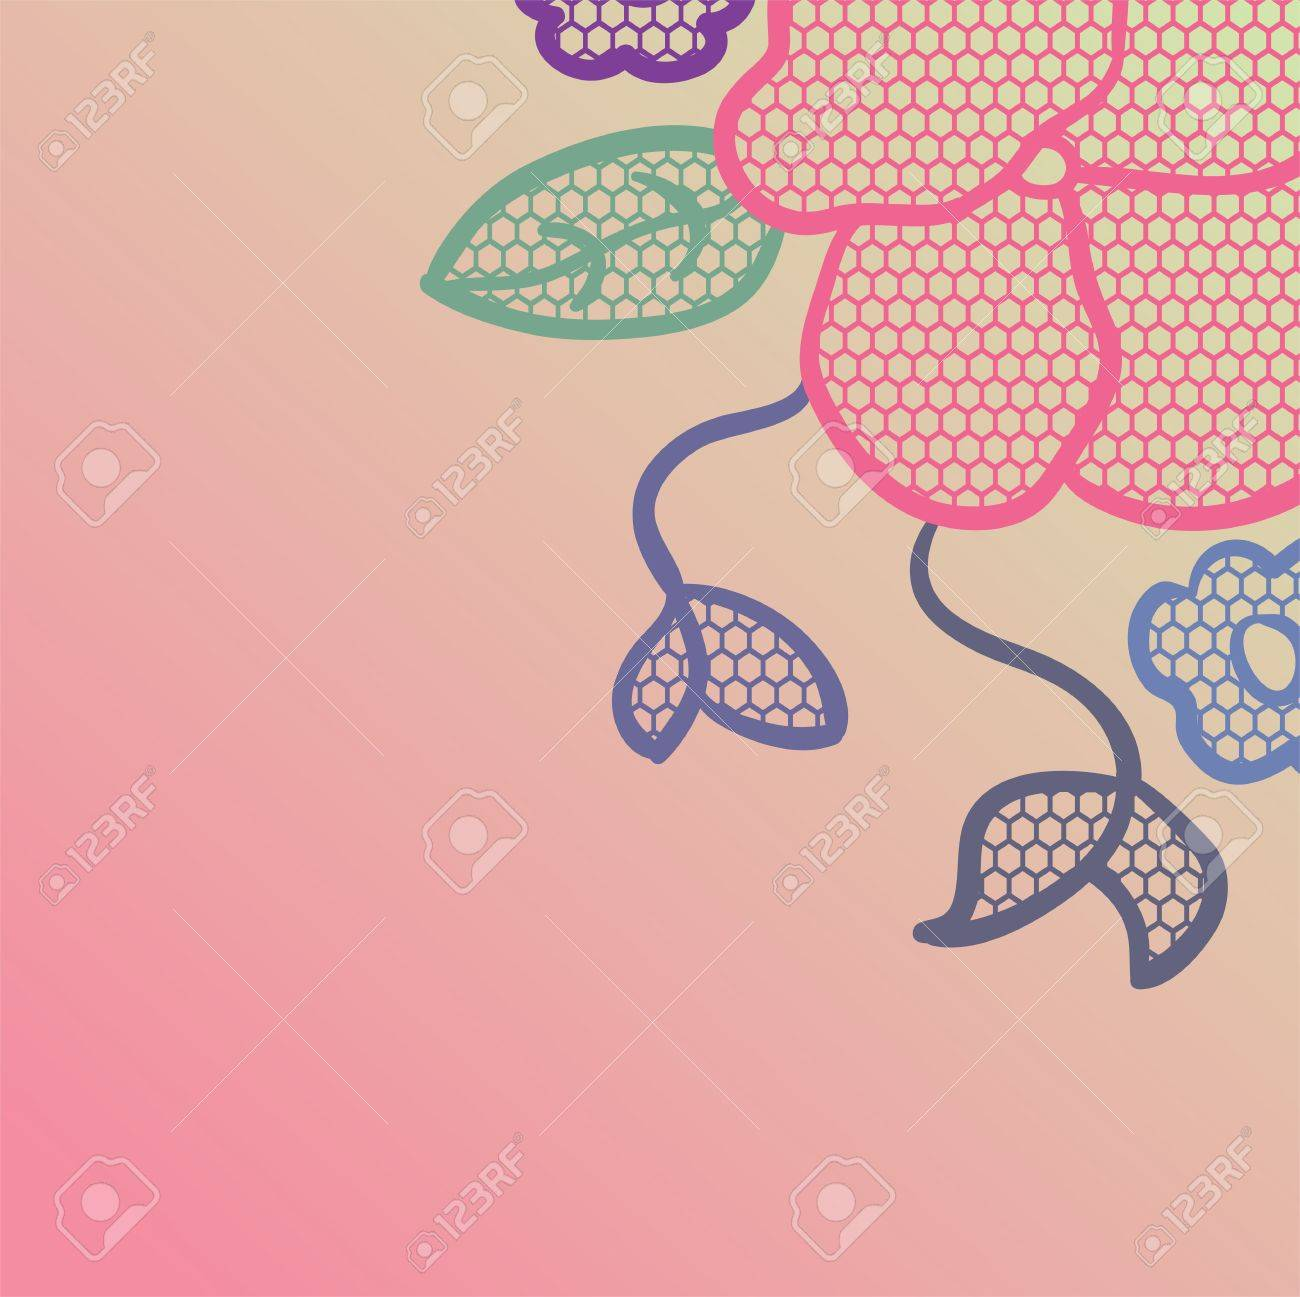 Lace pattern background Stock Vector - 13801753